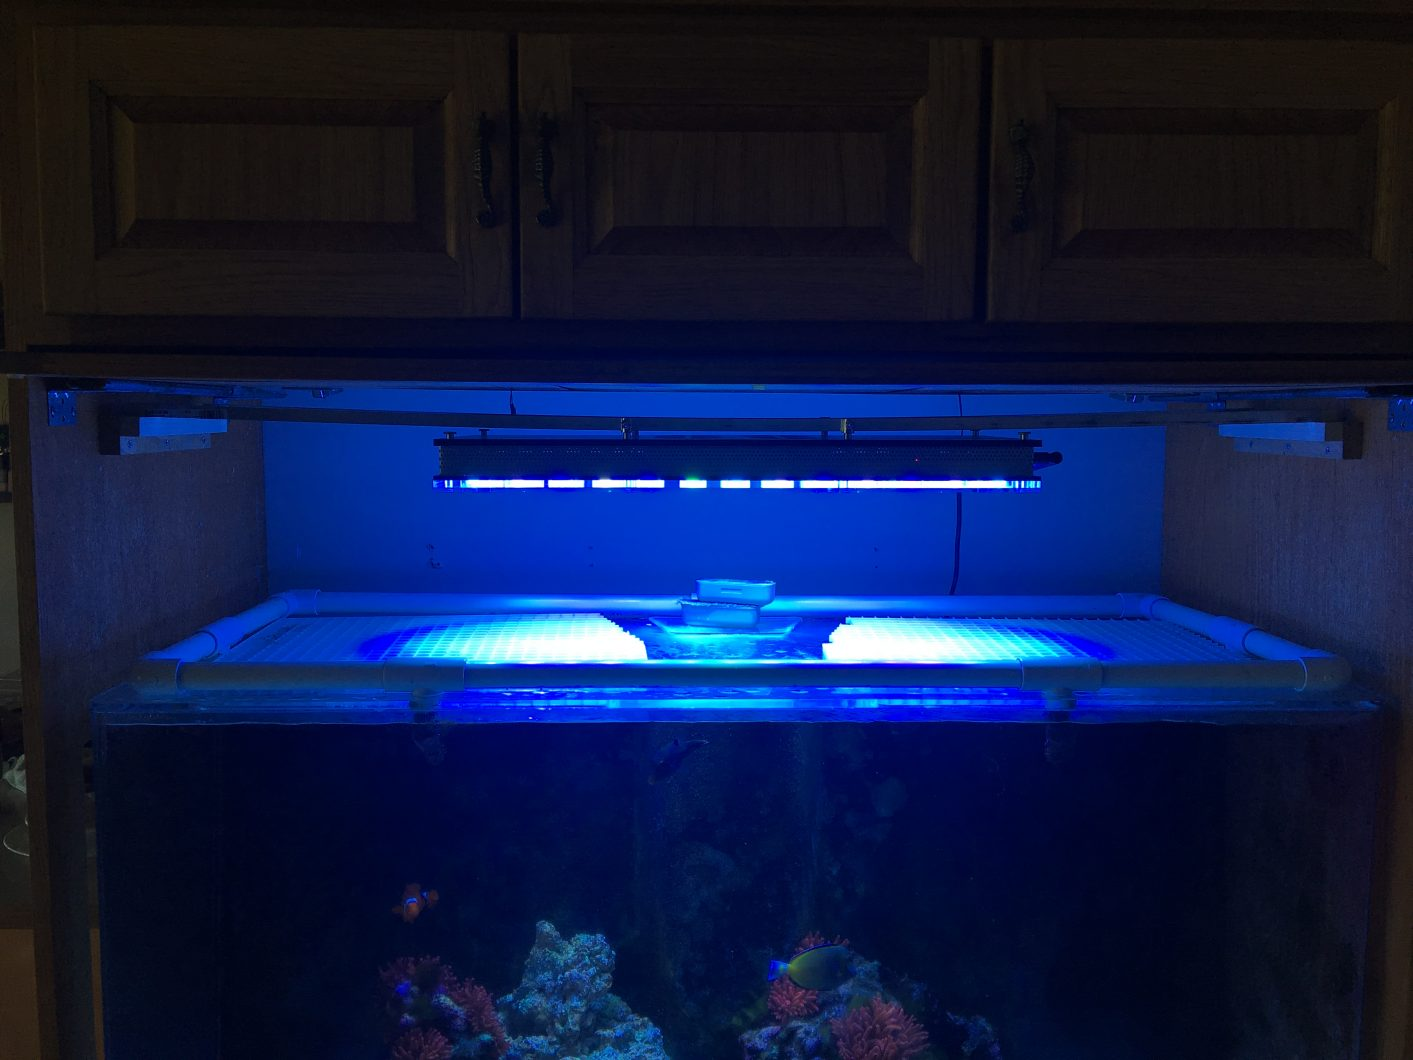 atlantik-v4-reef-aquarium-led-lighting